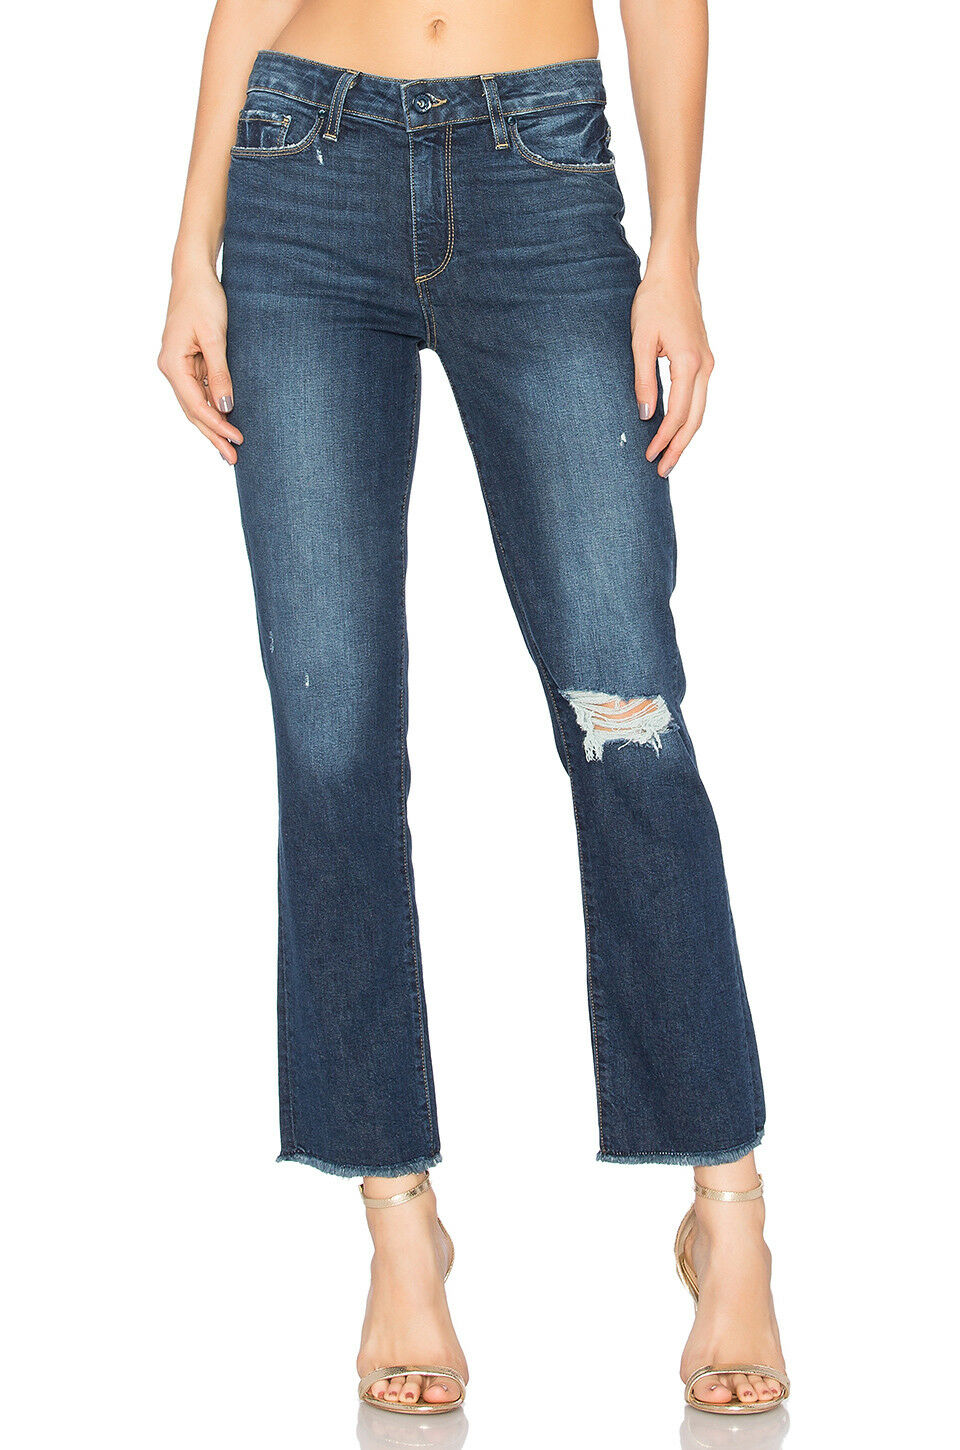 Paige Jacqueline straight Domino destructed crop jeans Raw Edge Hem sz.30 NWT